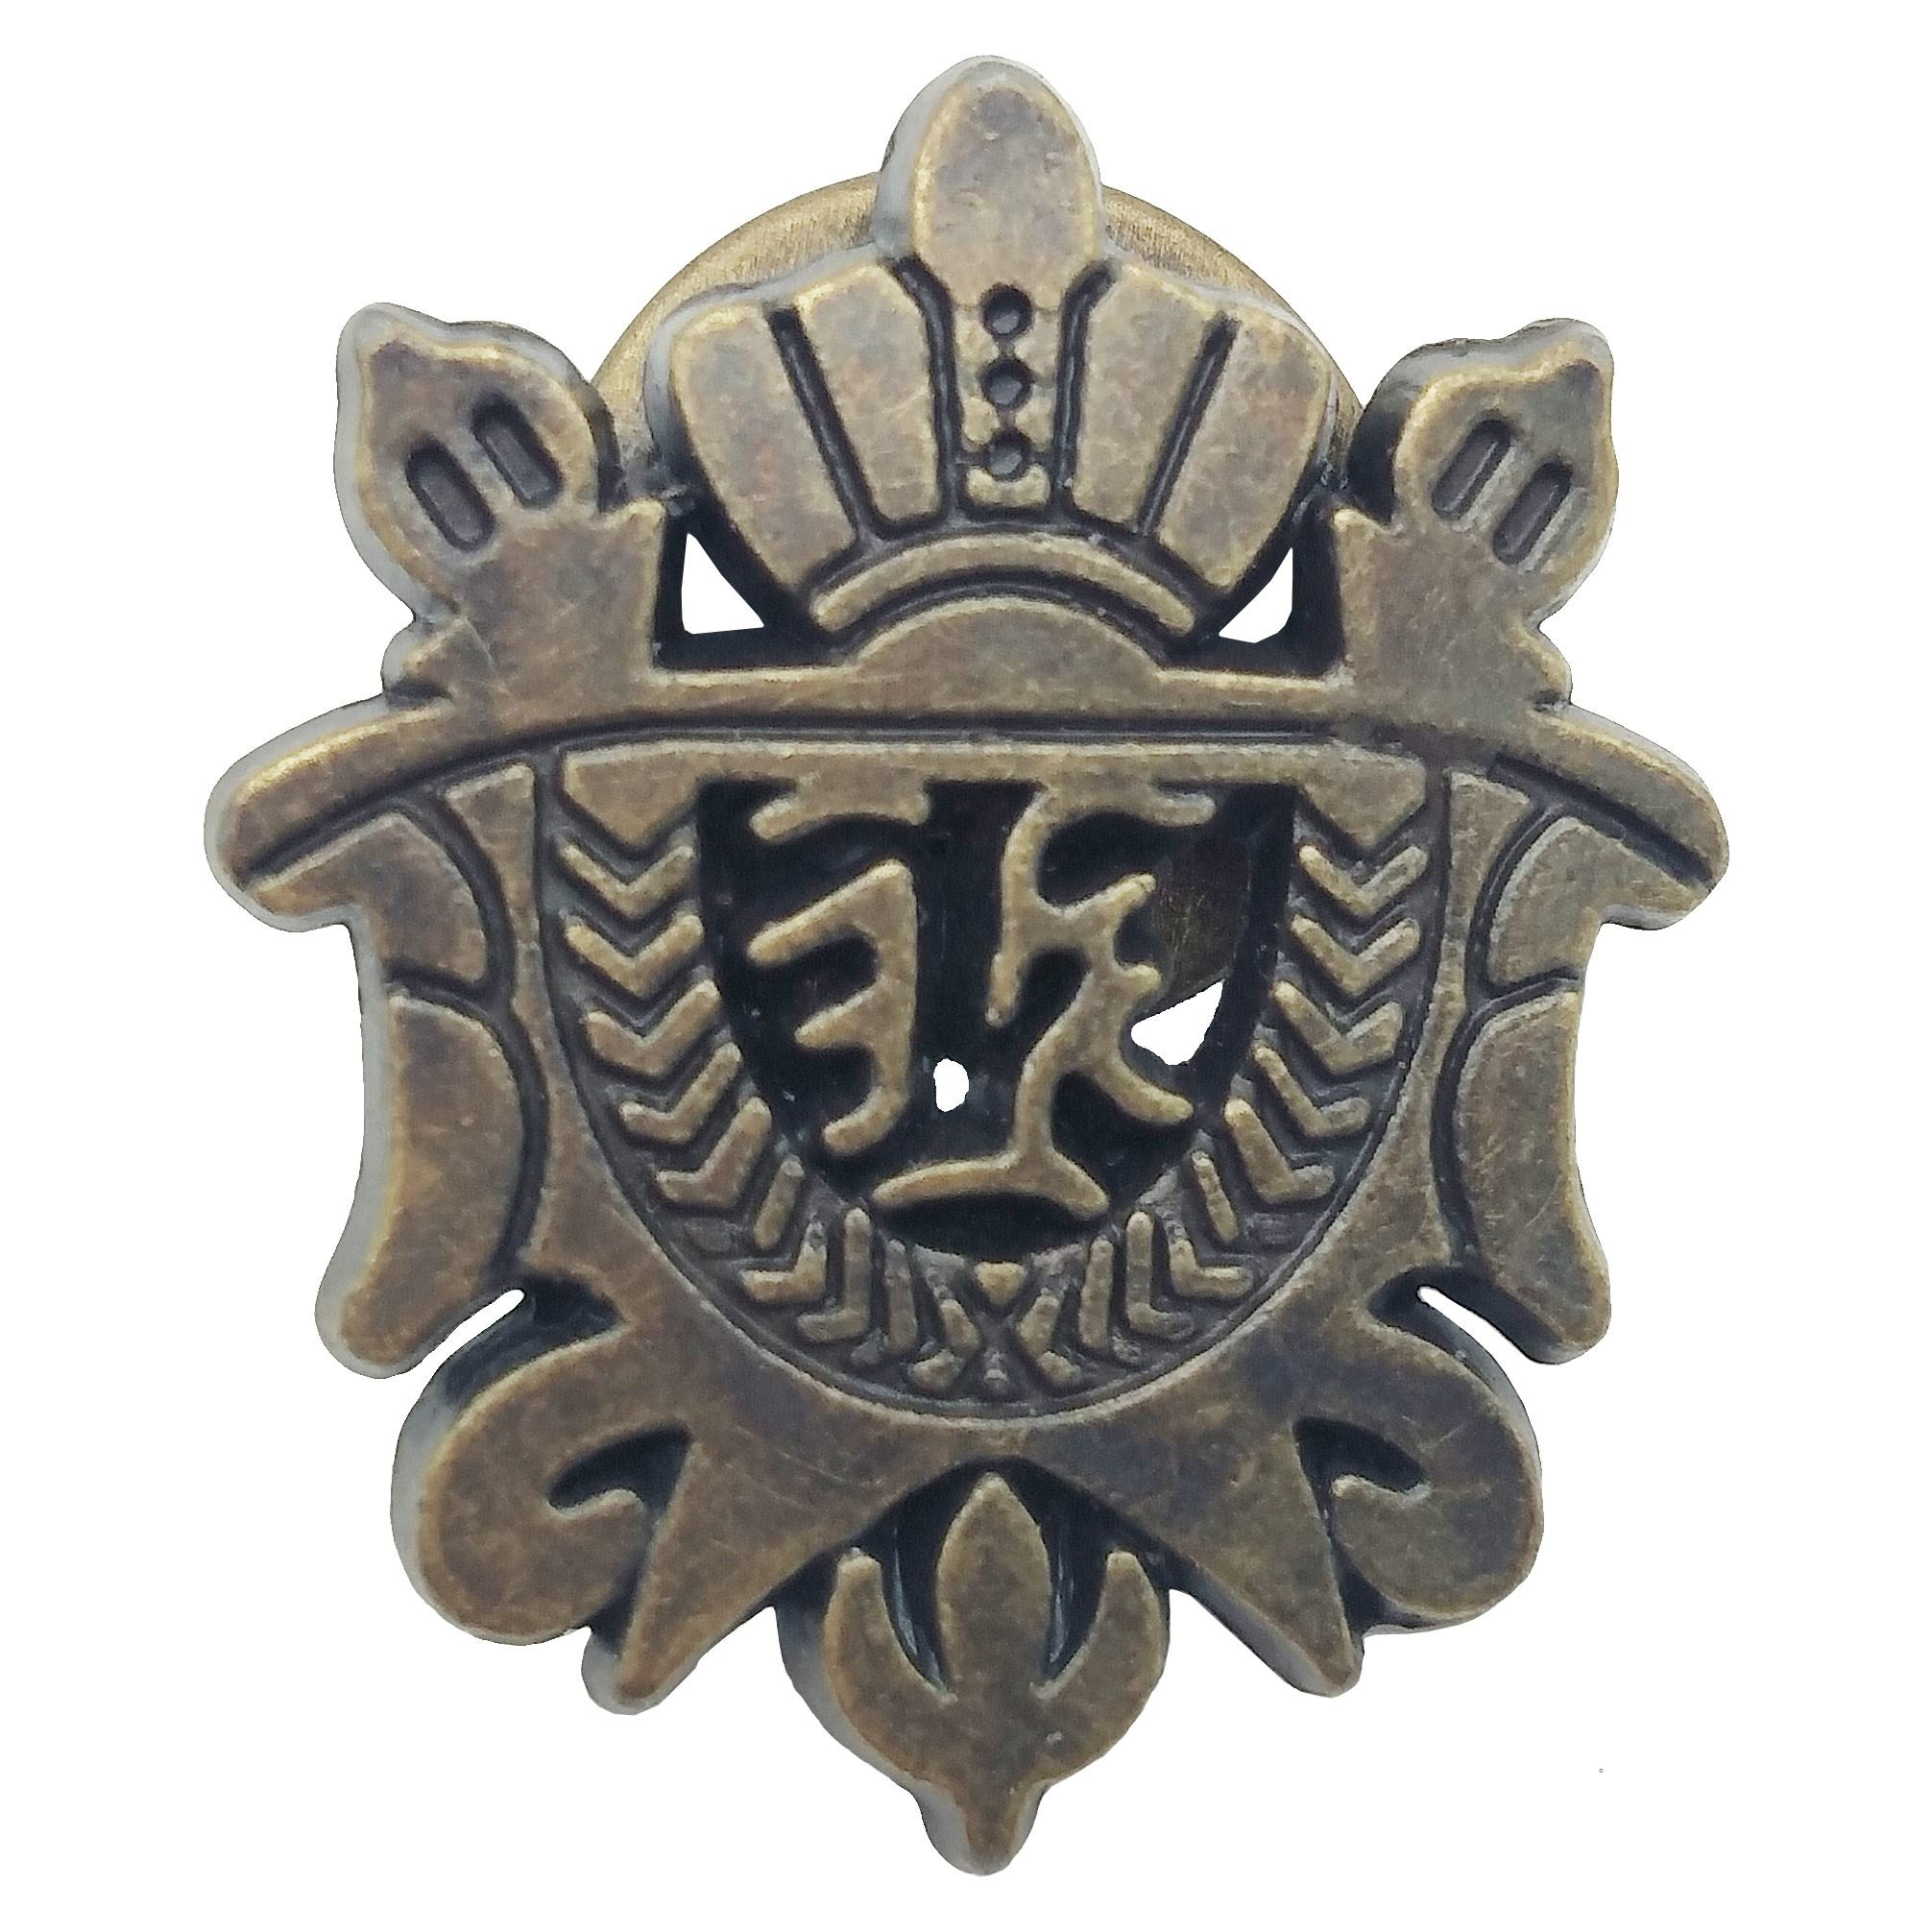 Custom design vintage metal craved badge antique bronze finished brooch pin trophy for awards